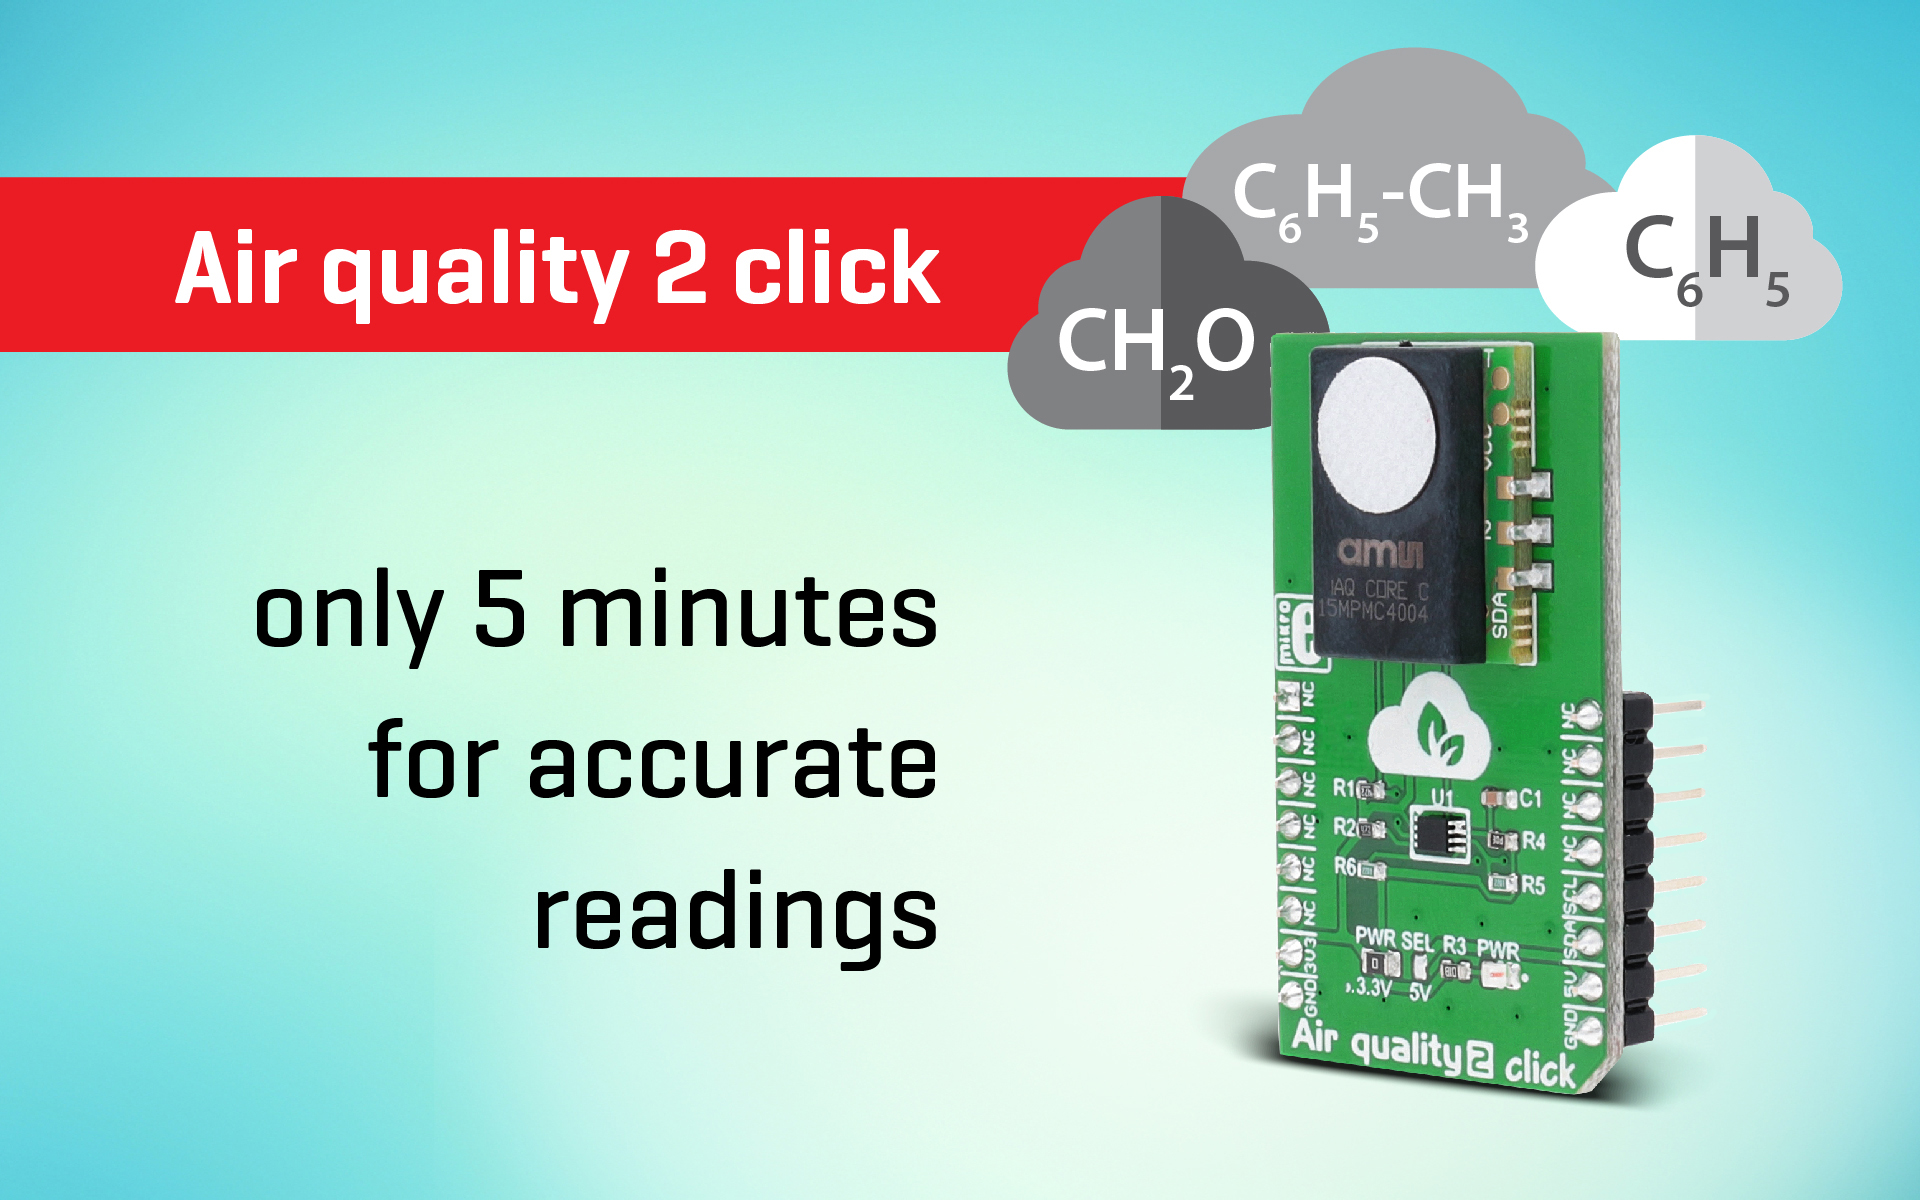 Only 5 minutes for accurate readings - Air quality 2 click